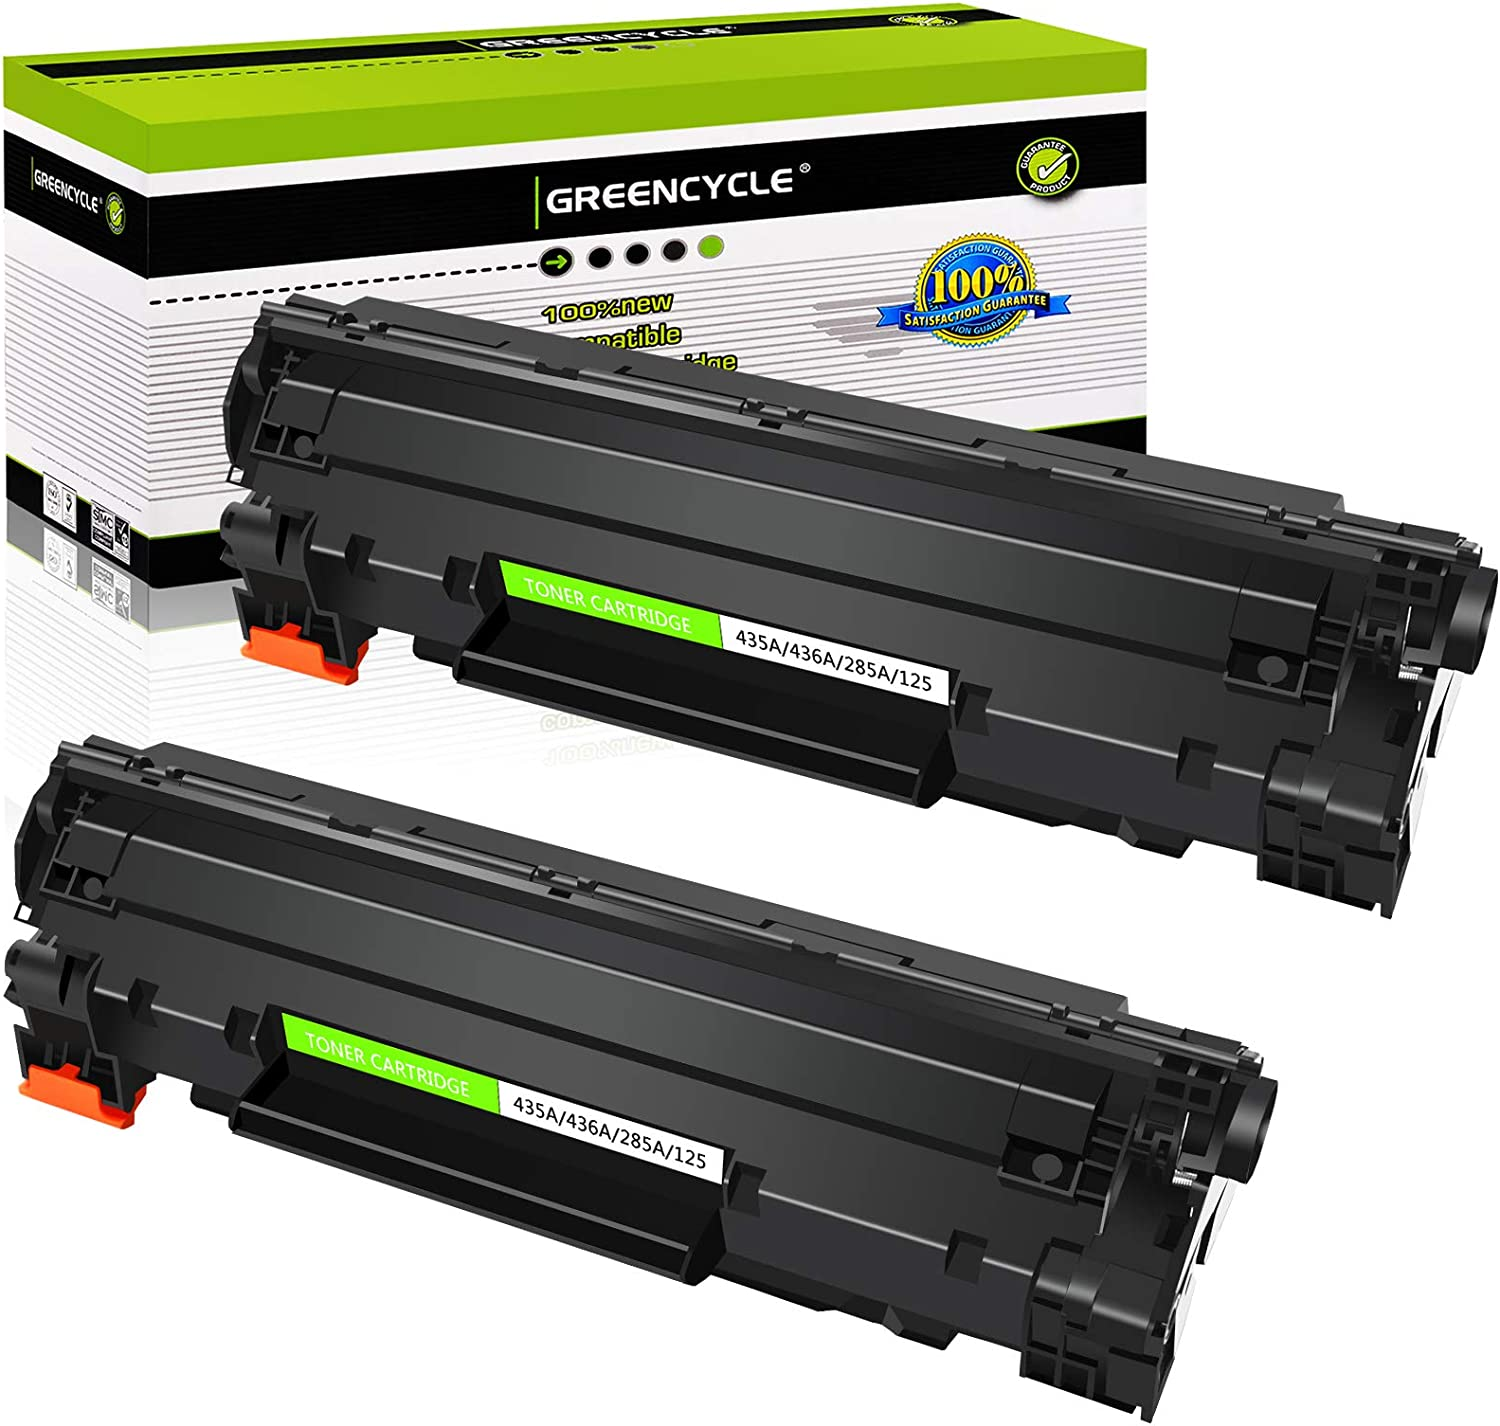 GREENCYCLE 2 PK Black CE285A 85A Toner Cartridge Replacement Compatible for HP Laserjet P1002 1003 1004 1005 1006 1009 P1102 P1102w Printer